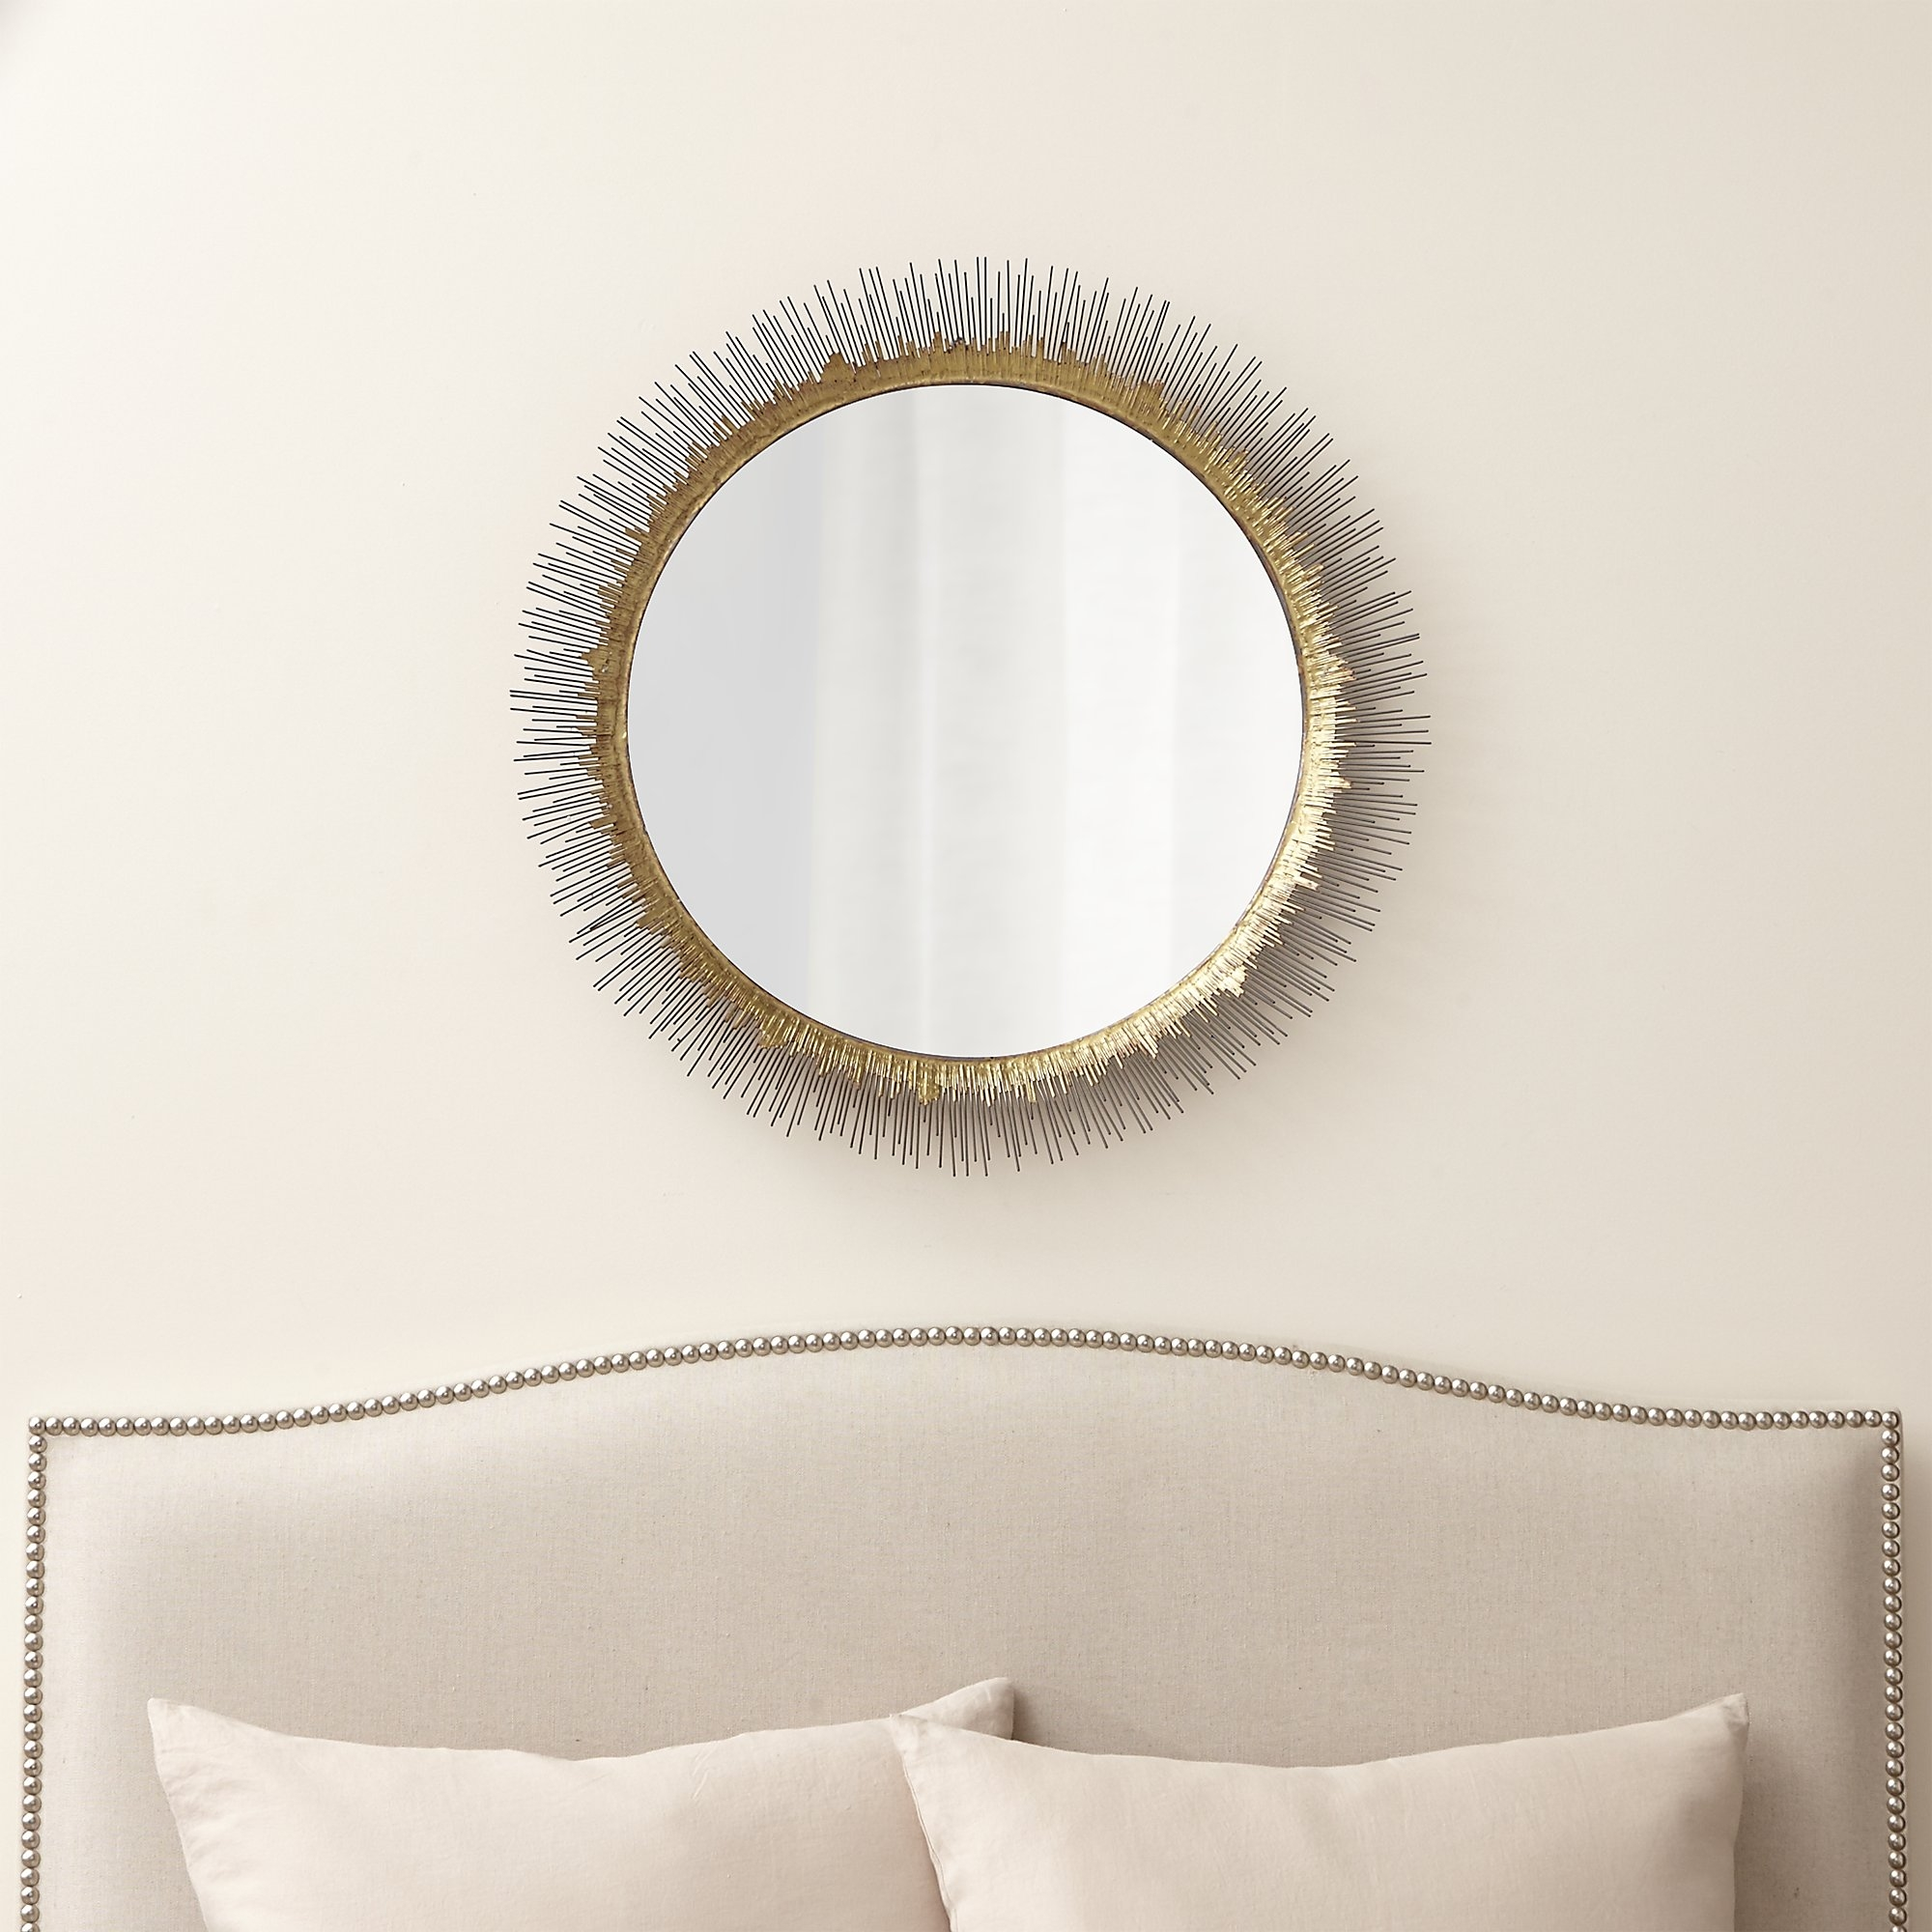 Clarendon Large Round Wall Mirror Crate And Barrel Crate And In Clarendon Mirror (View 4 of 15)